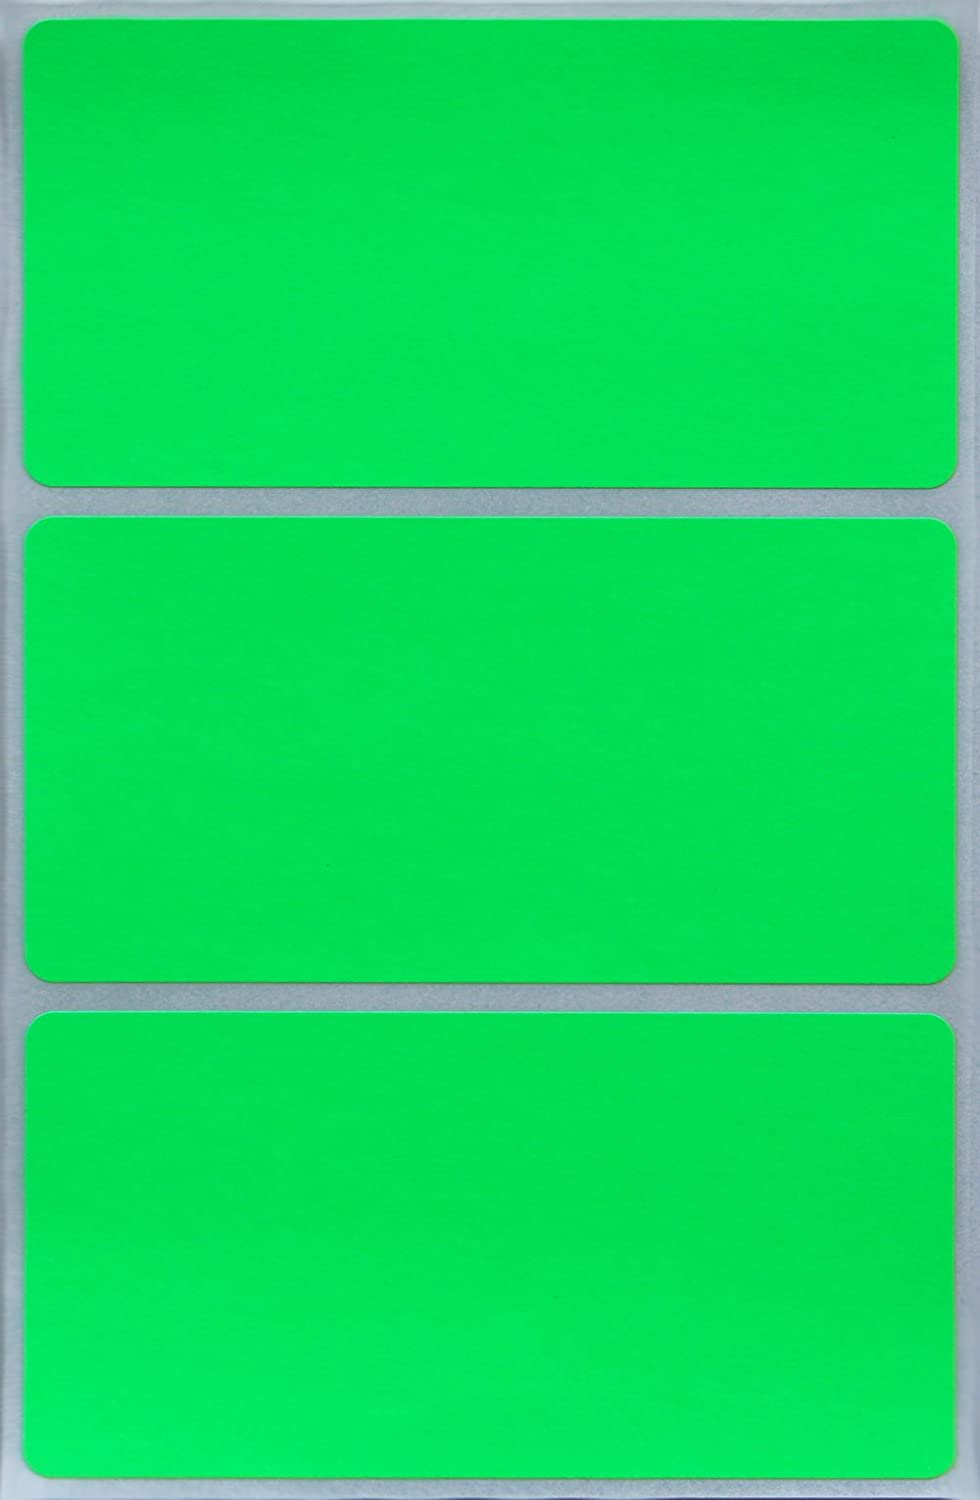 Pink Yellow Orange and Brown Royal Green Rectangular Stickers Peel and Stick Labels 4 x 2 inches in 8 Colors Red Blue 24 Pack Green Purple